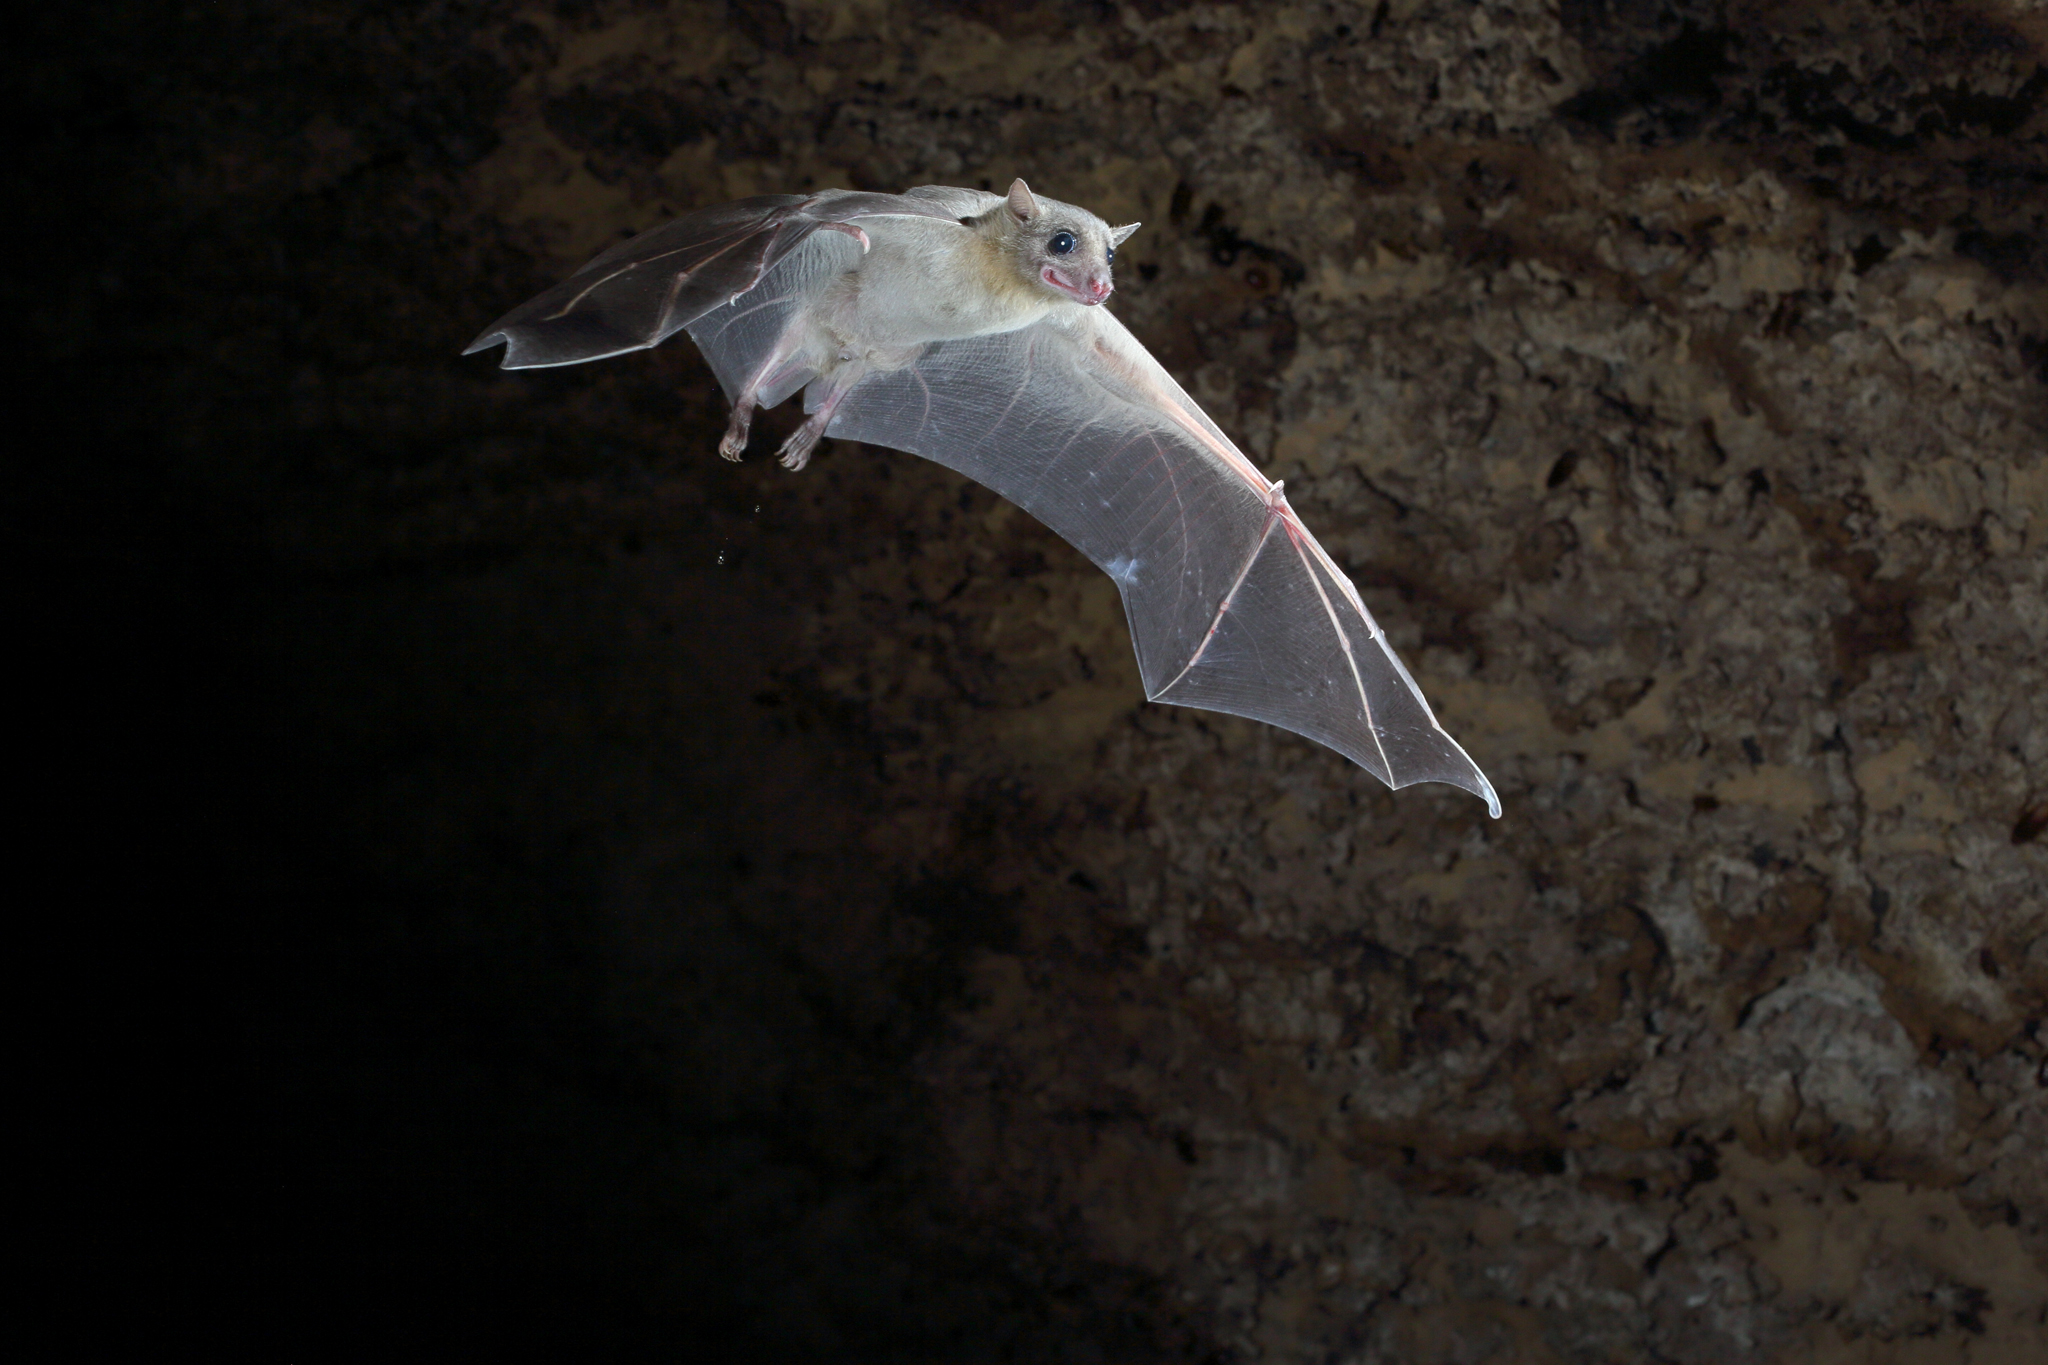 Egyptian fruit bats are unusual among fruit bats for roosting in caves during the day. Other species roost on trees. Credit: Jens Rydell